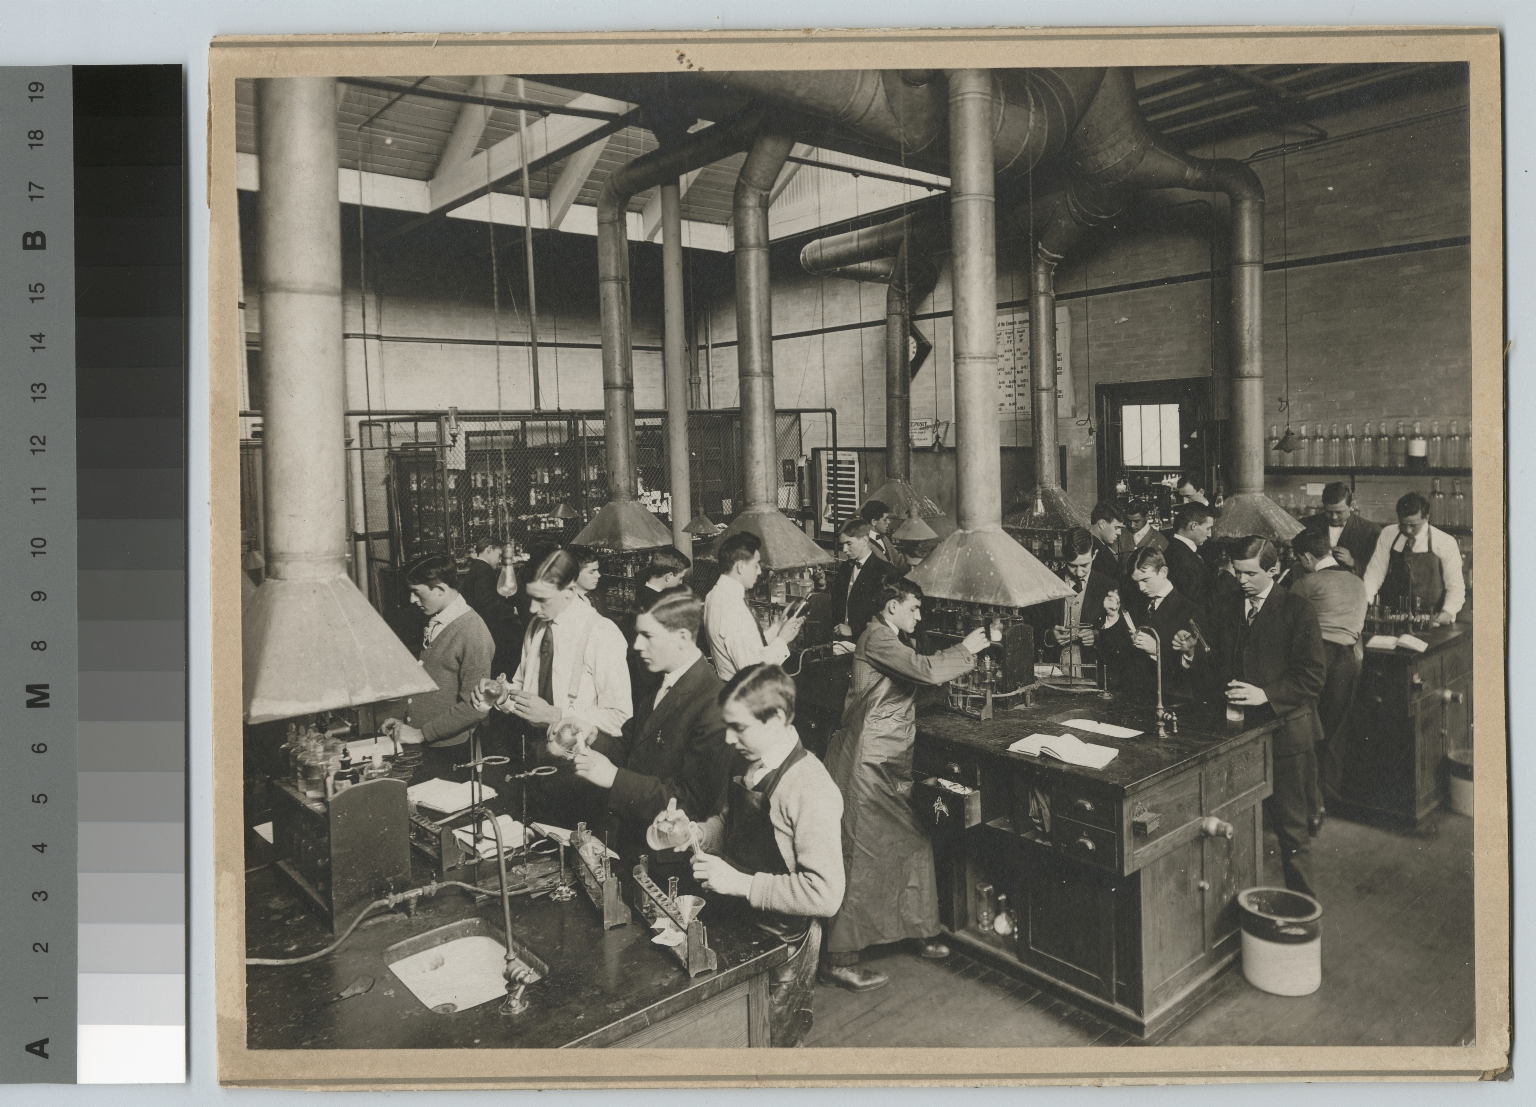 Academics, chemistry. Rochester Athenaeum and Mechanics Institute chemistry laboratory with students working on experiments, [1900-1920]